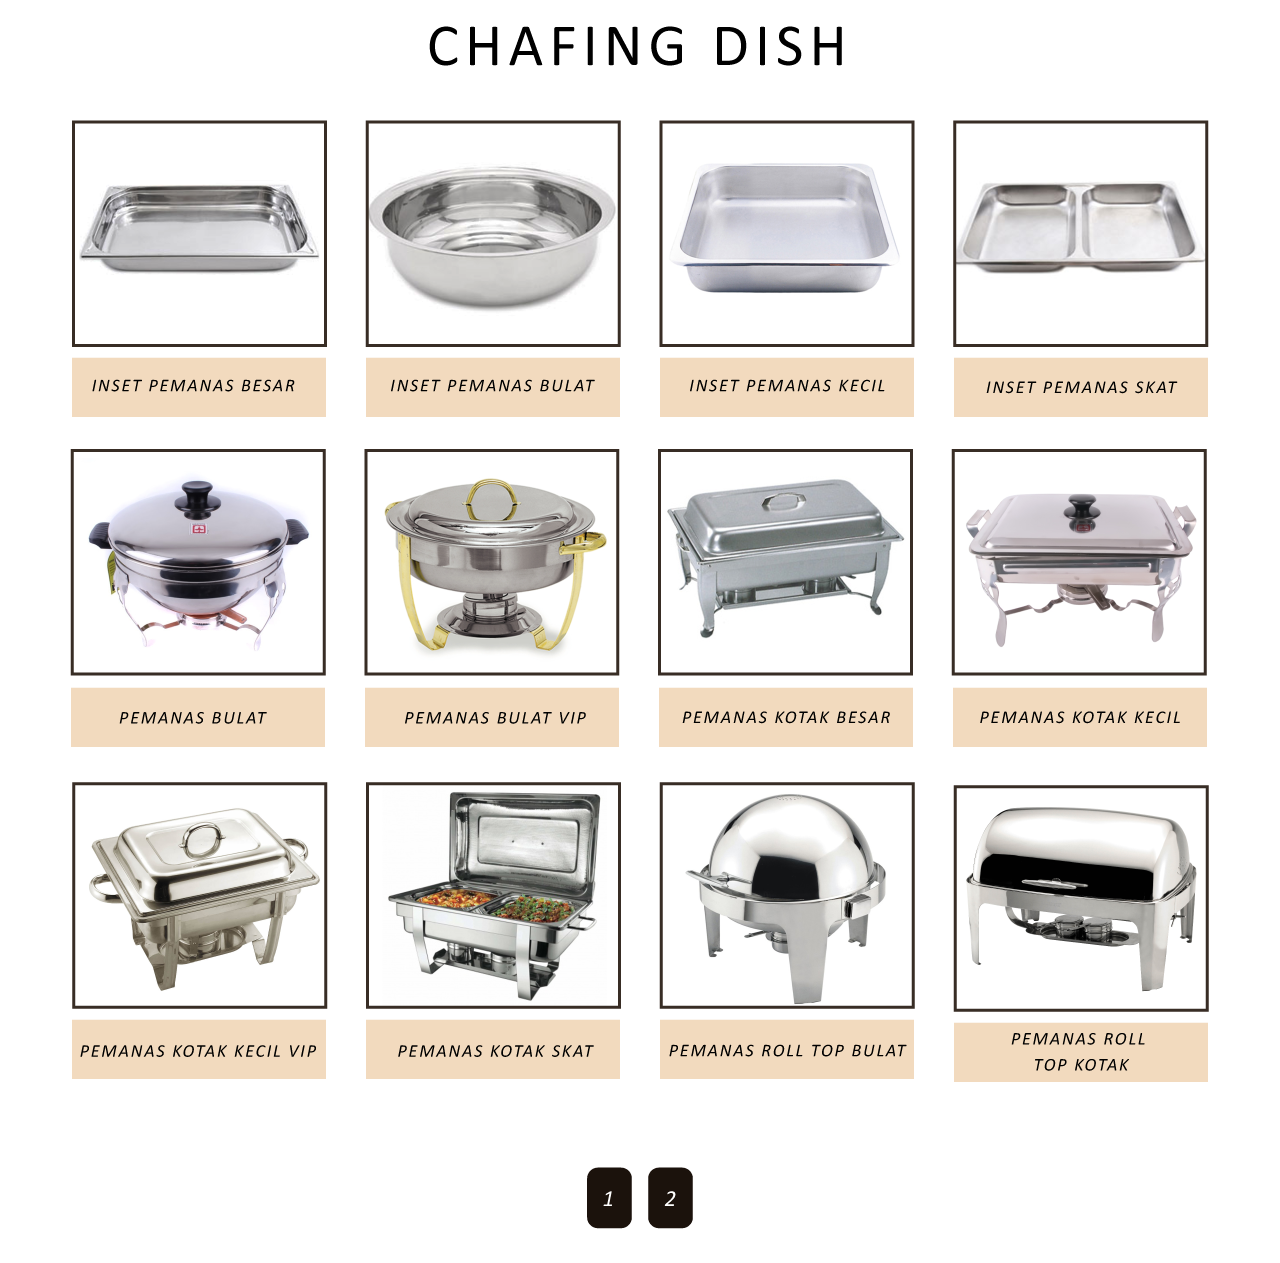 http://www.suyono.co.id/2015/08/chafing-dish-2.html